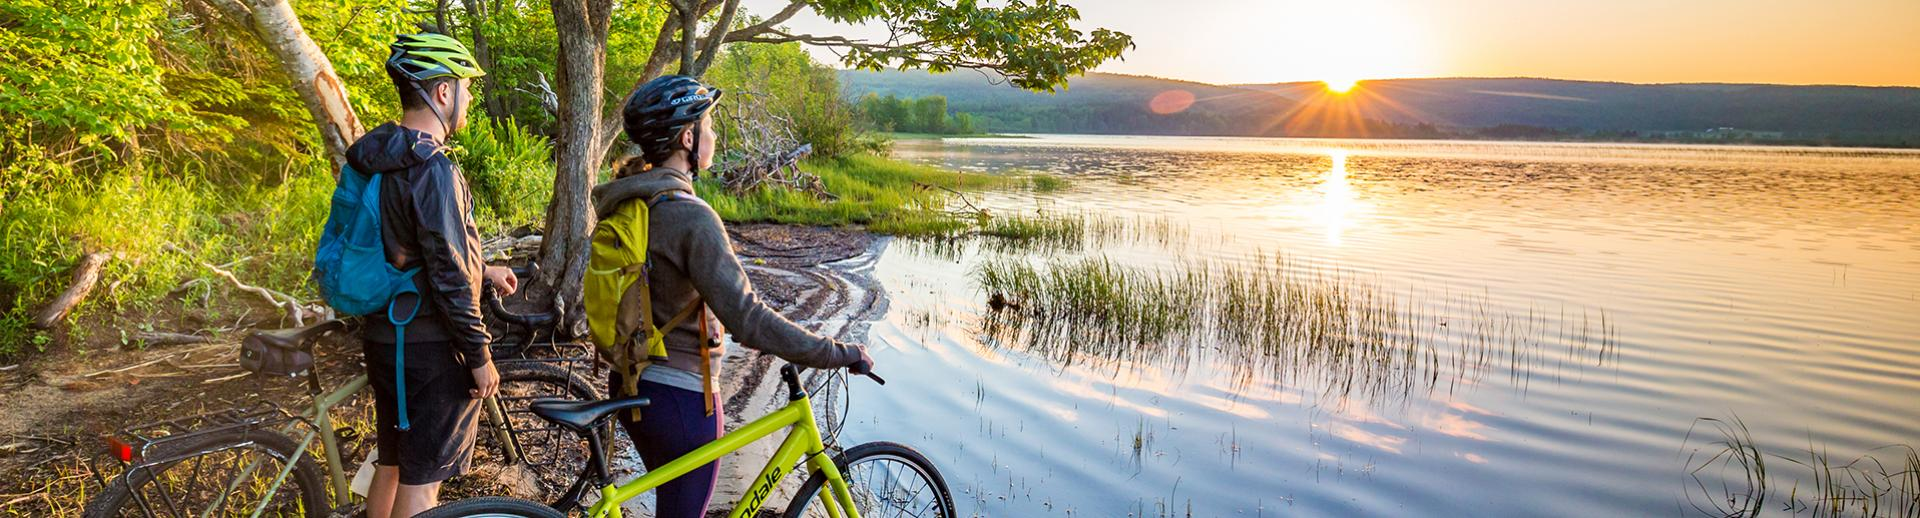 Cycling at sunset in Nova Scotia